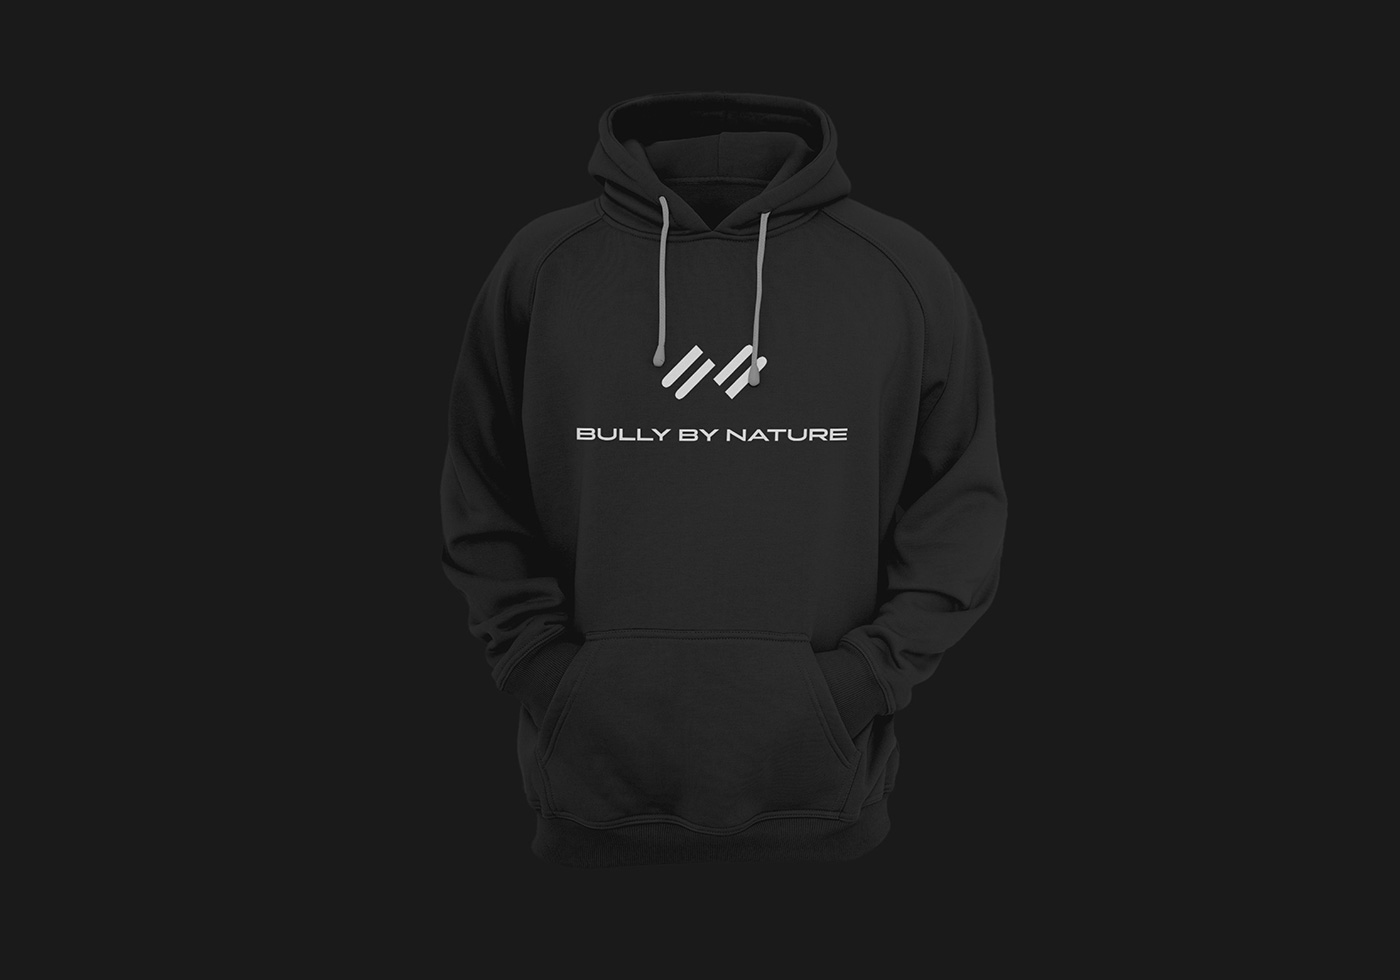 bully by nature hoodie